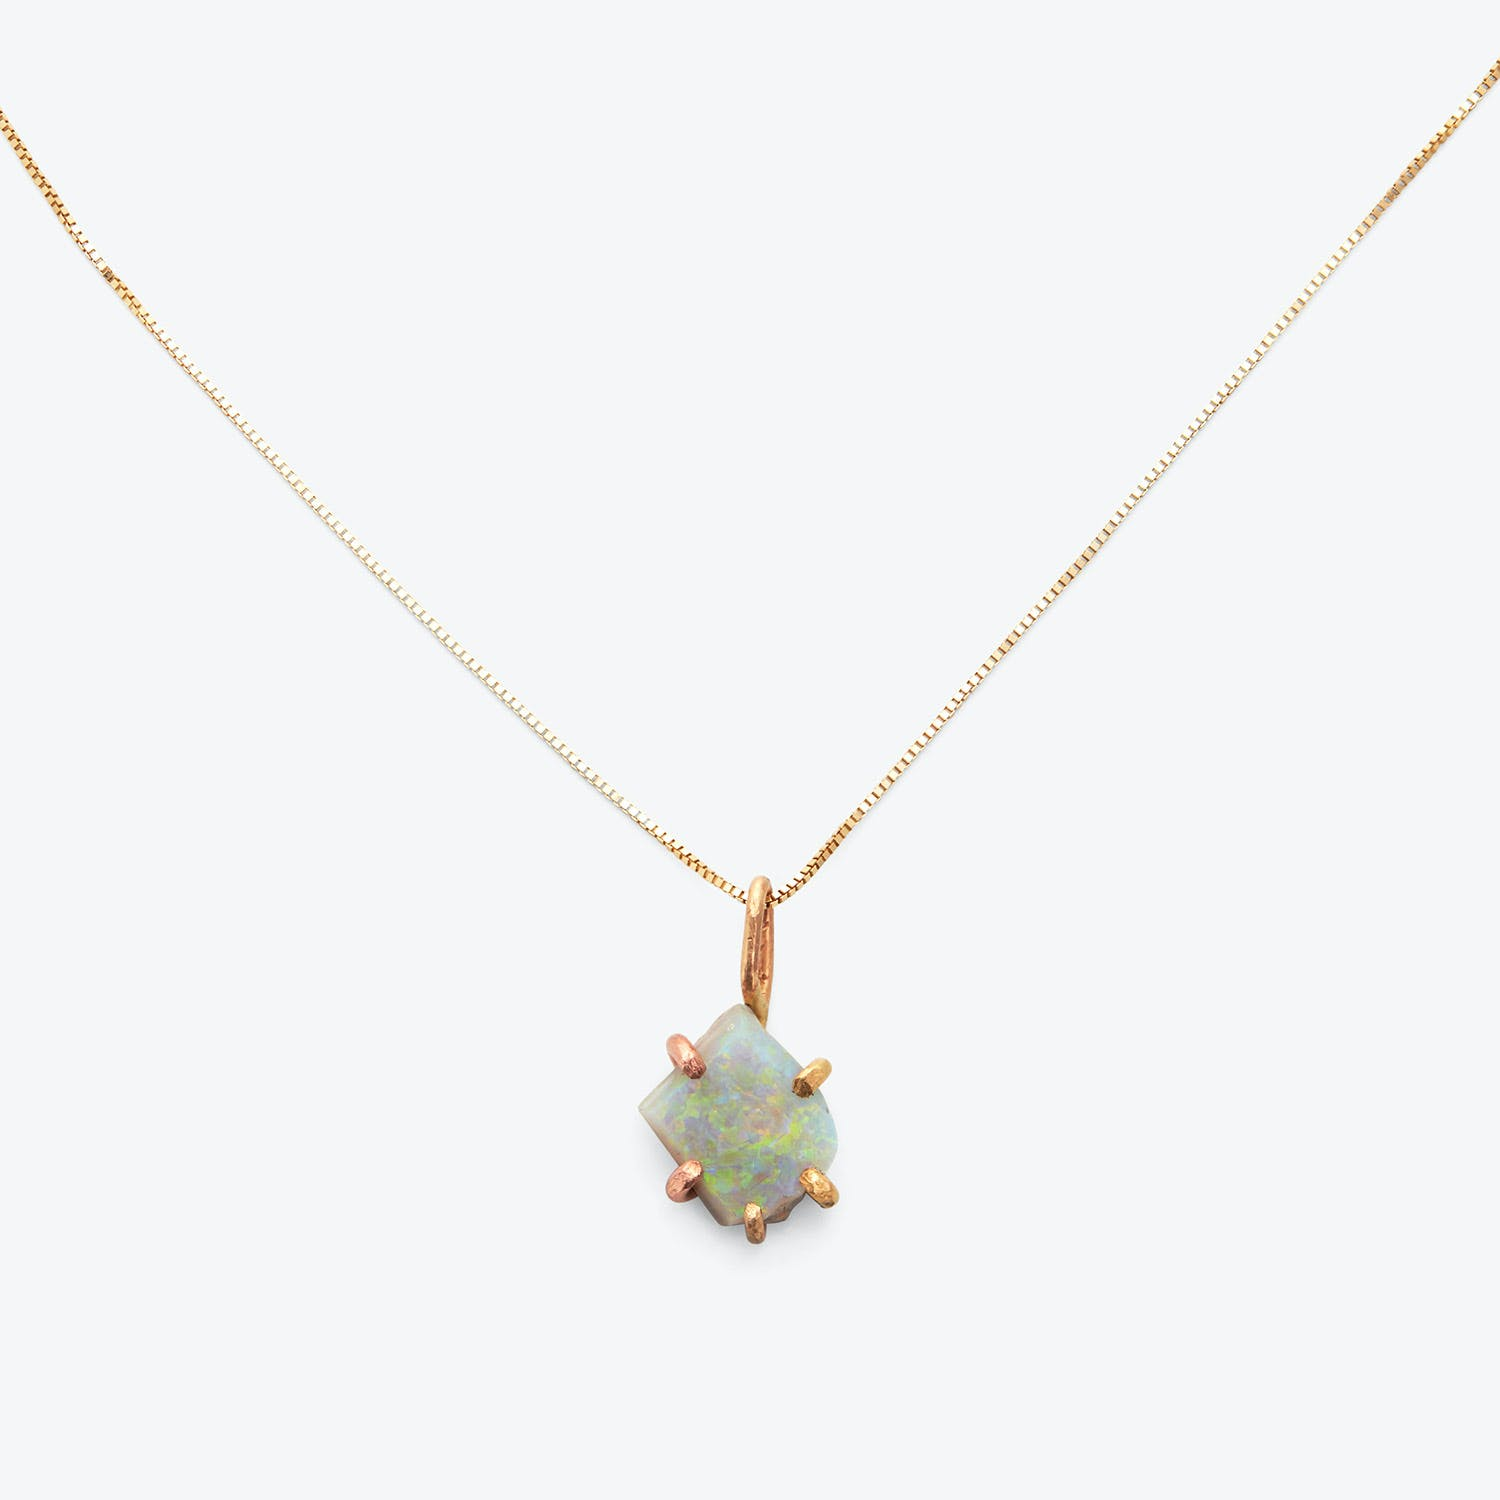 Variance Objects Opal Necklace